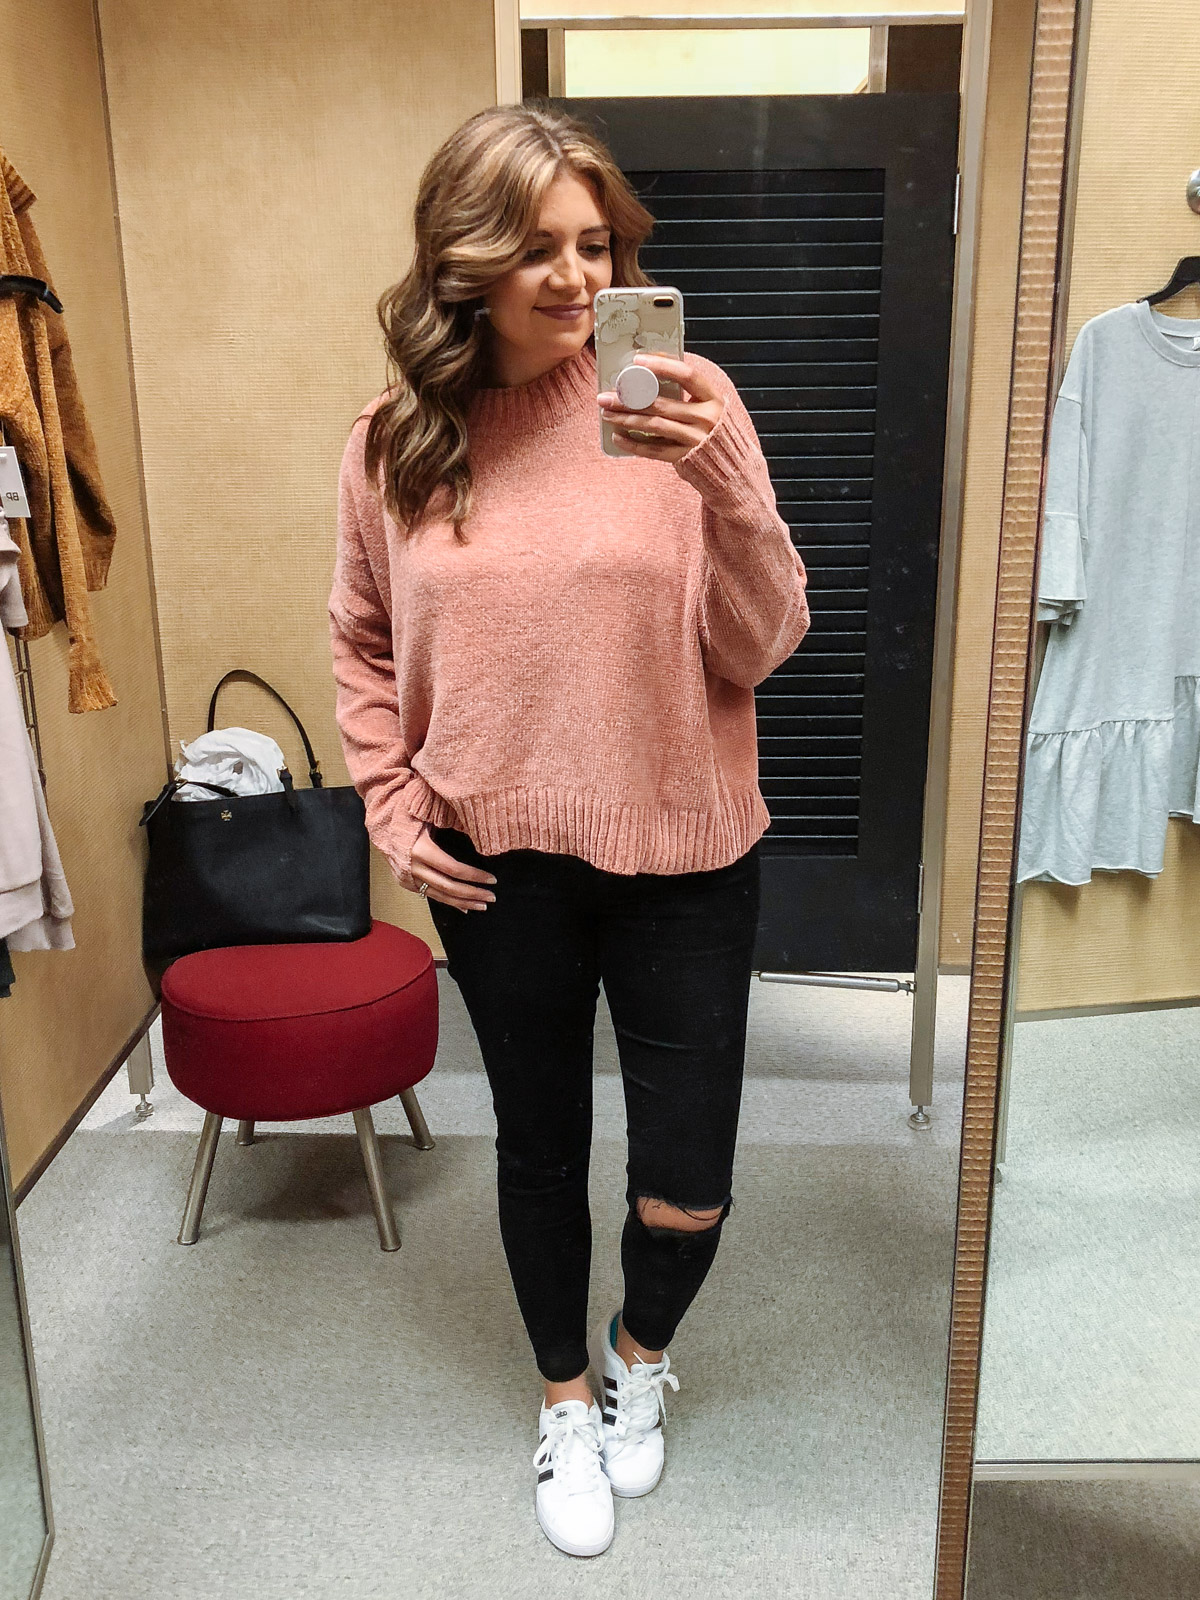 Nordstrom dressing room reviews Fall | Huge fall try-on session! See my picks from Nordstrom, Shopbop, Loft, and H&M! bylaurenm.com